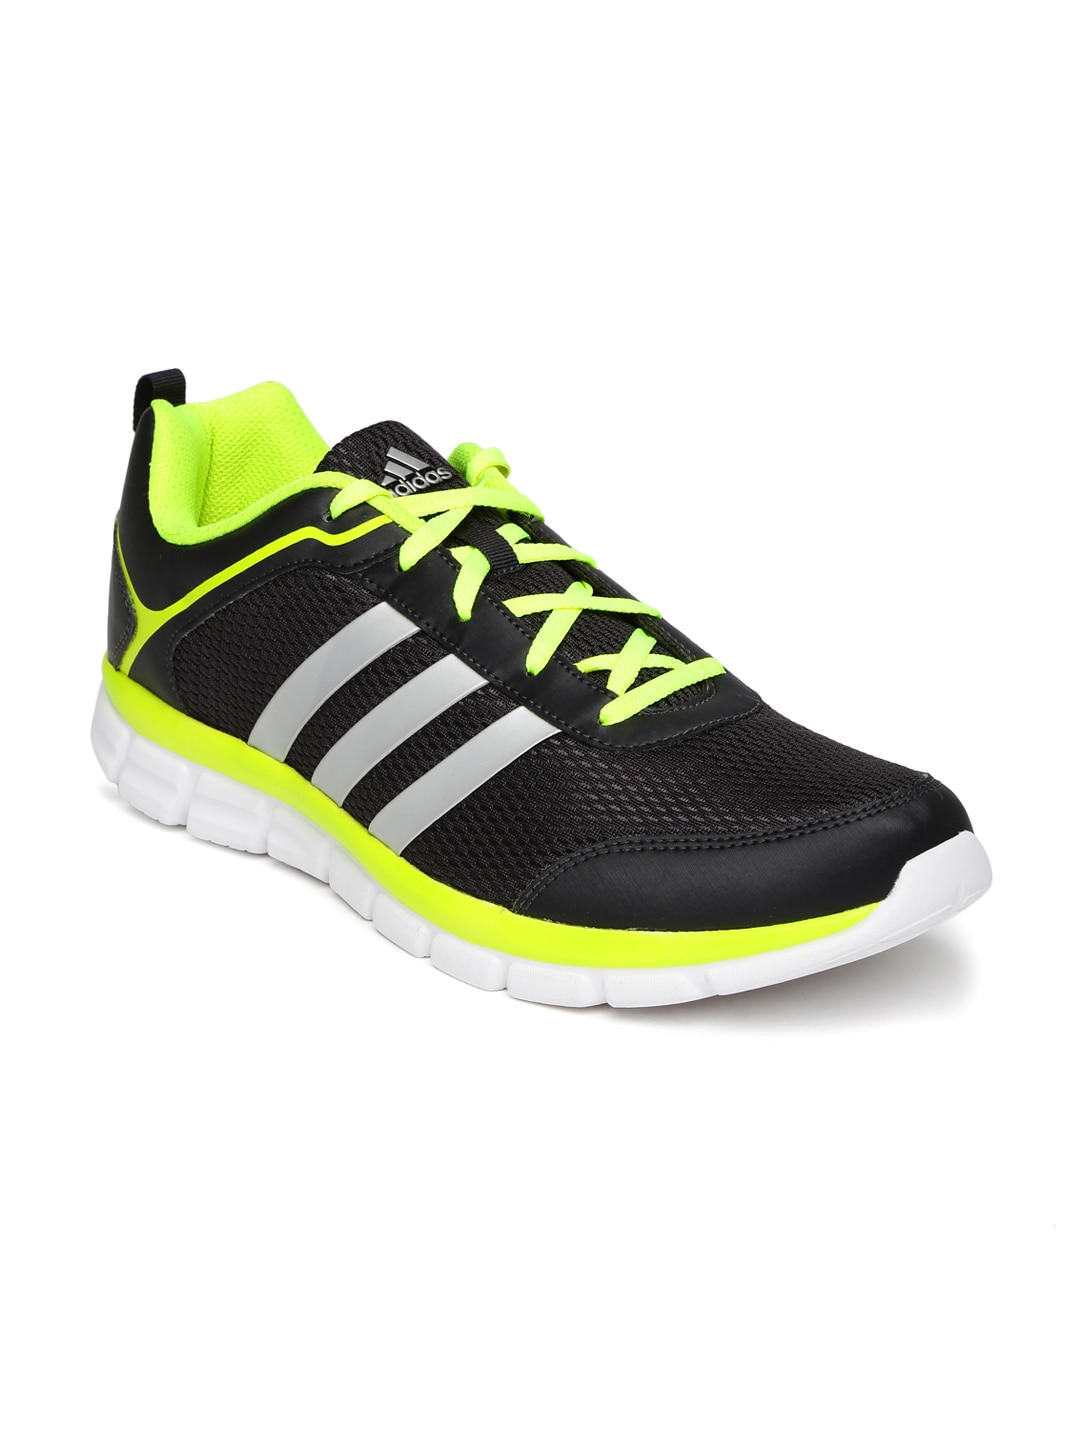 promo code b0fc8 2145d Adidas ba2741 Men Charcoal Marlin 5 0 Running Shoes- Price in India